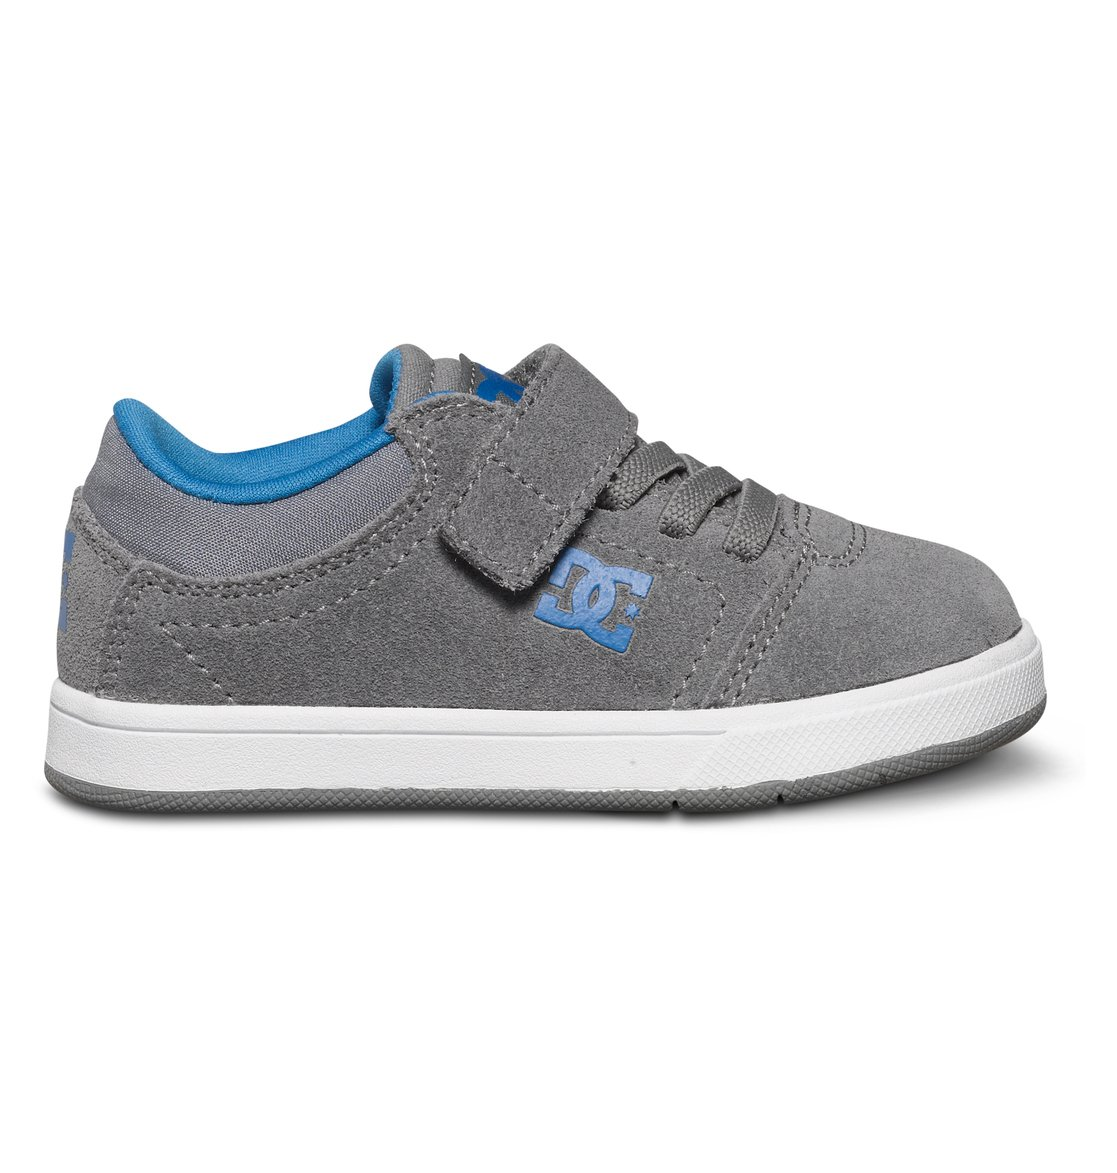 Toddler Crisis Shoes ADTS100021 | DC Shoes